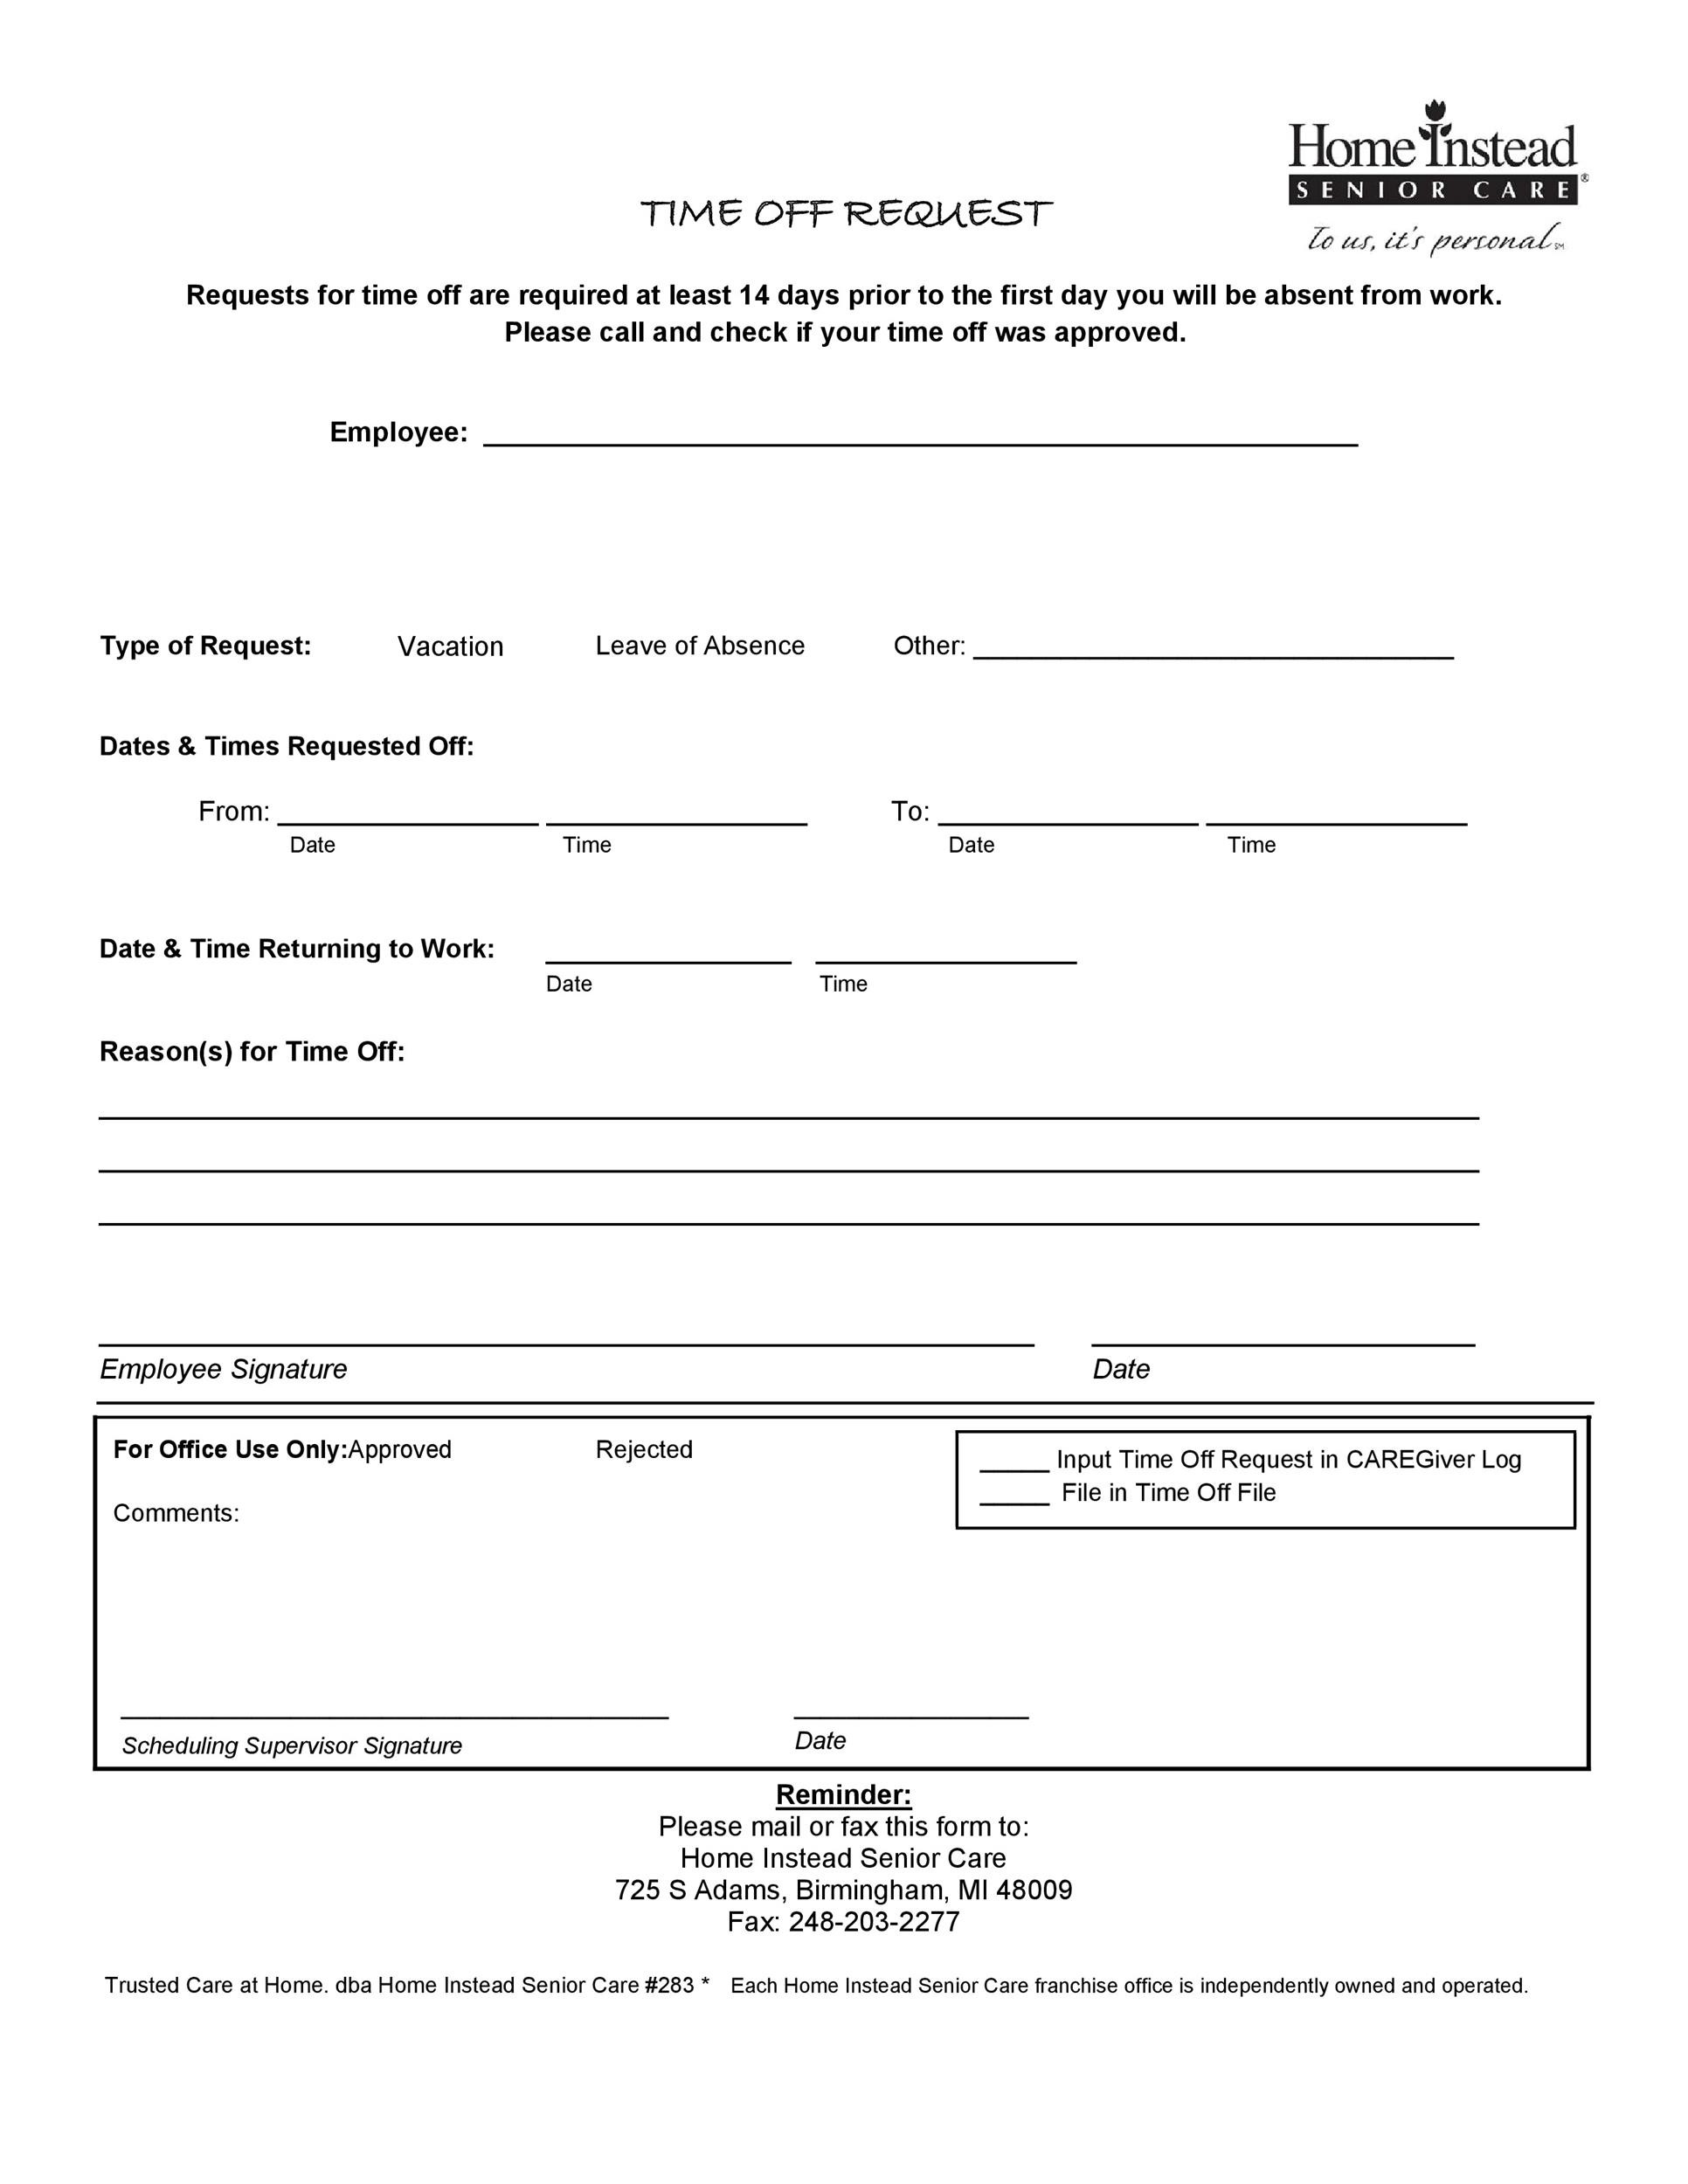 leave of absence request form template - Onwebioinnovate - leave request form template